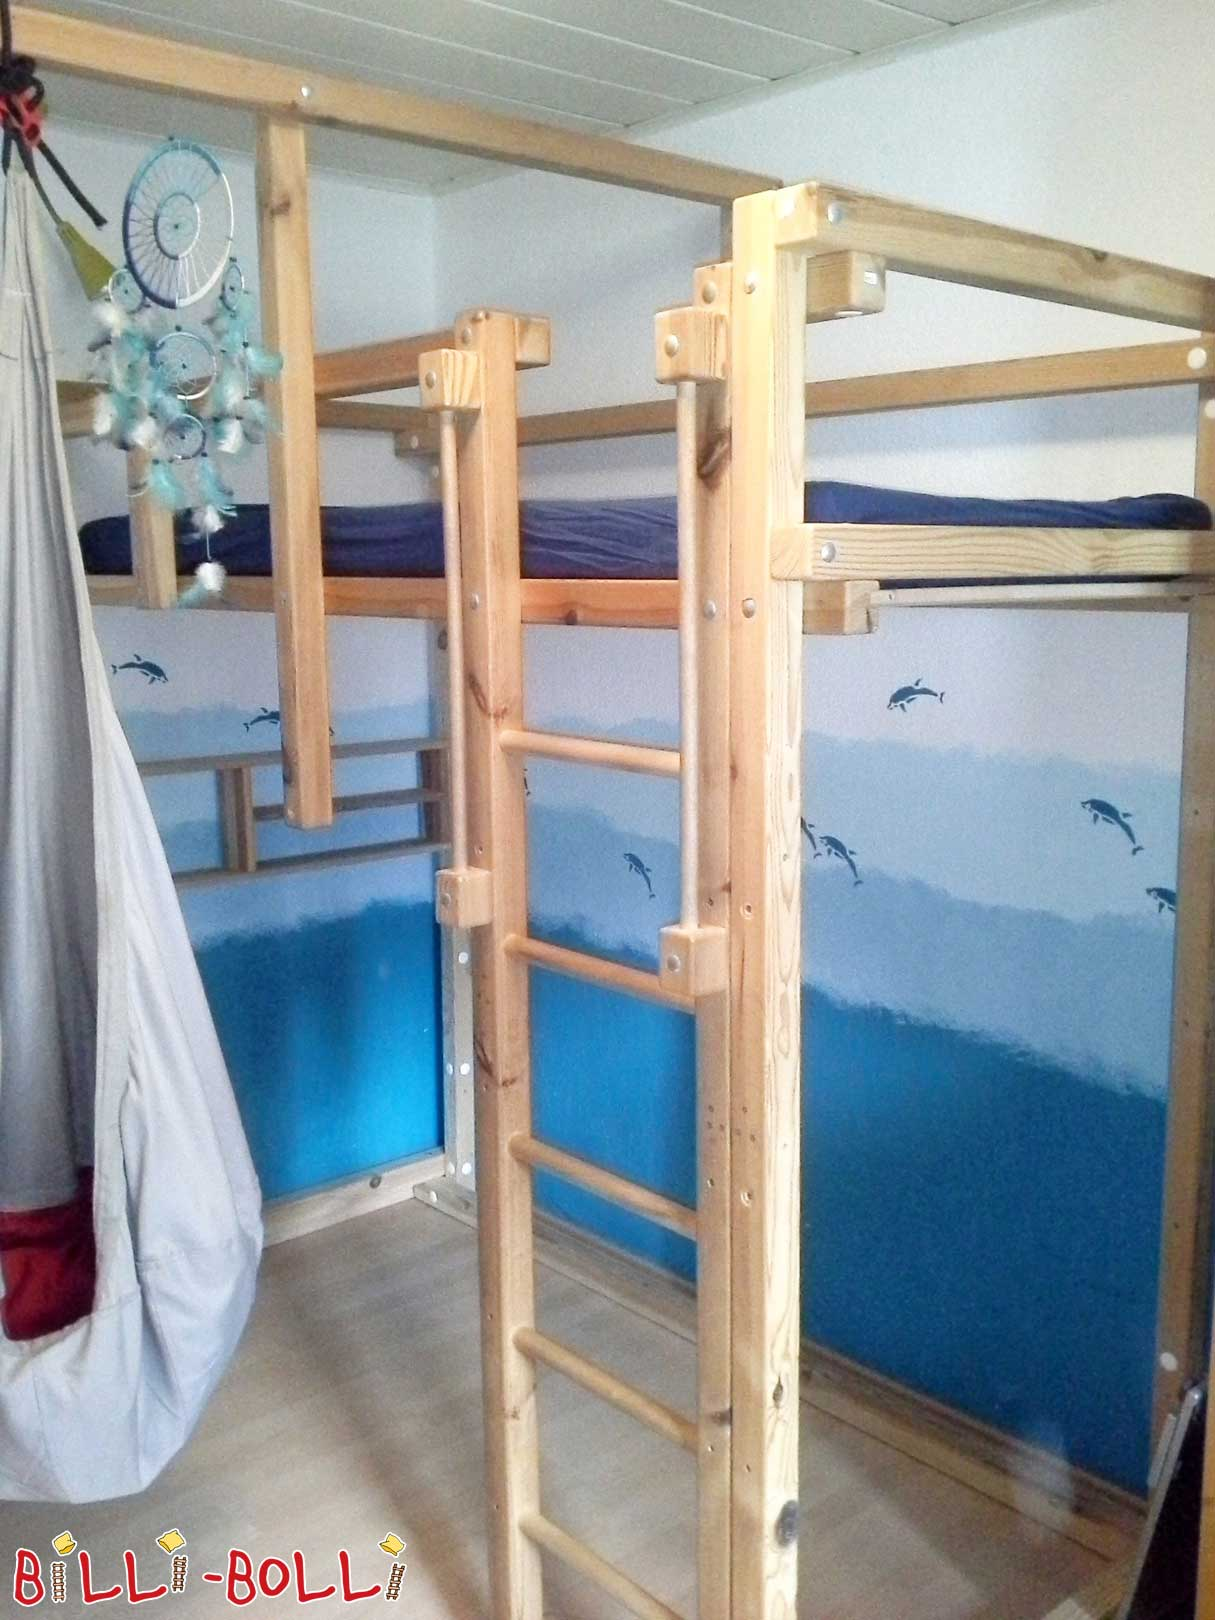 Growing up bed, 90 x 200 cm, jaw untreated (second hand loft bed)